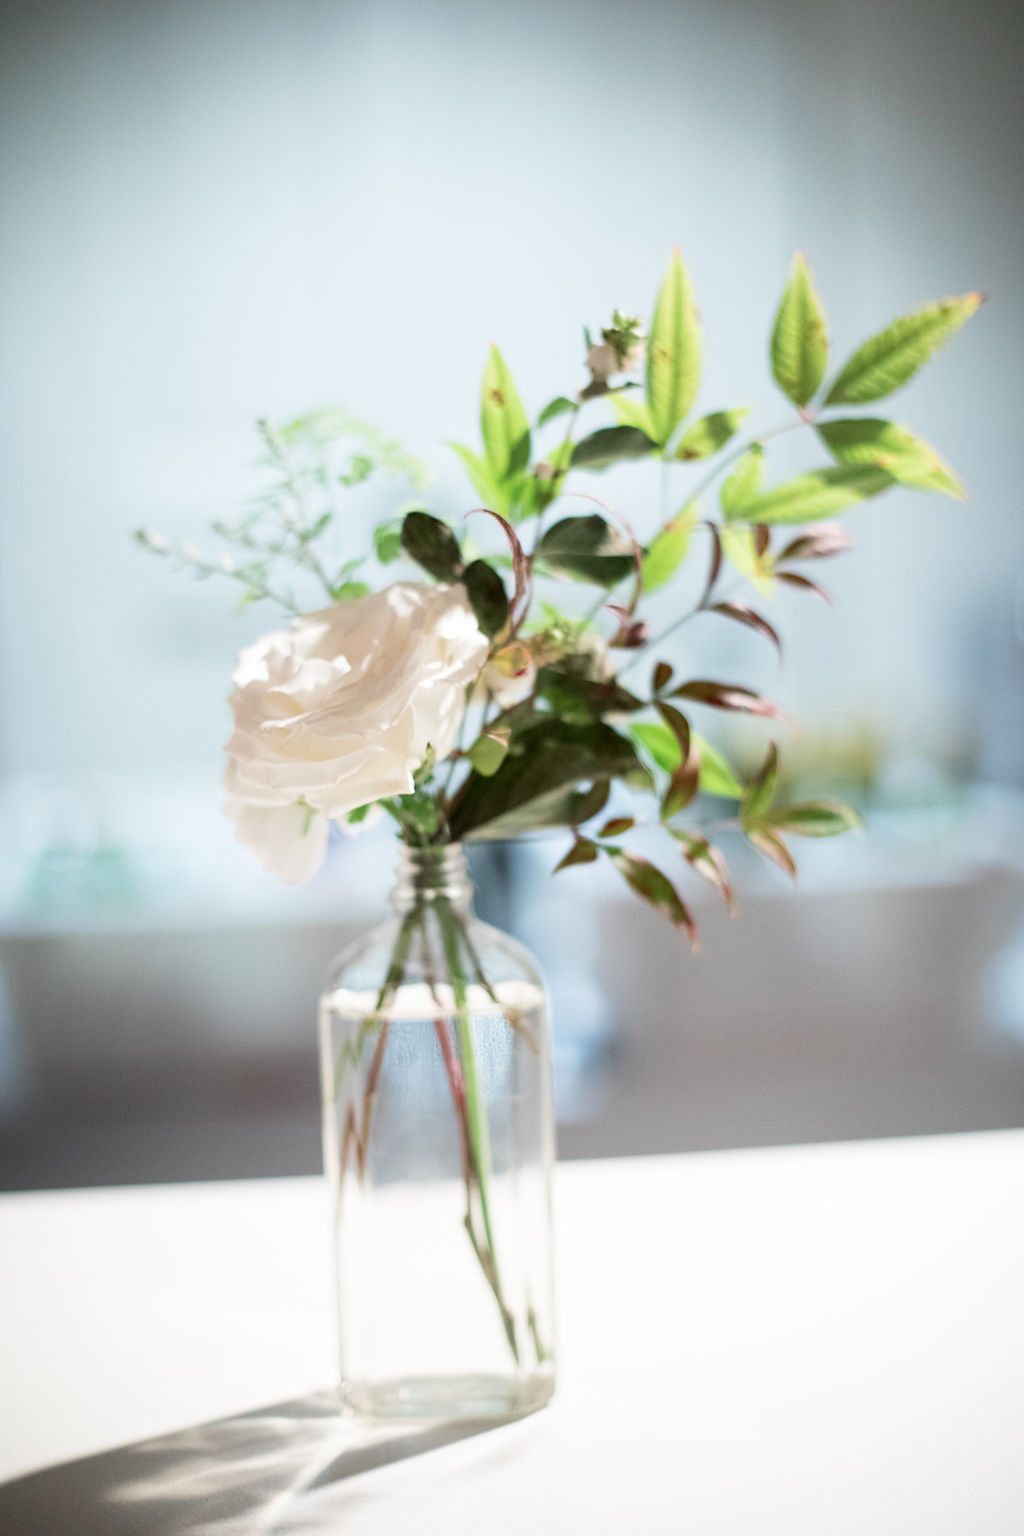 SImple bud vase with a white garden rose and greenery. Nashville Wedding Florist